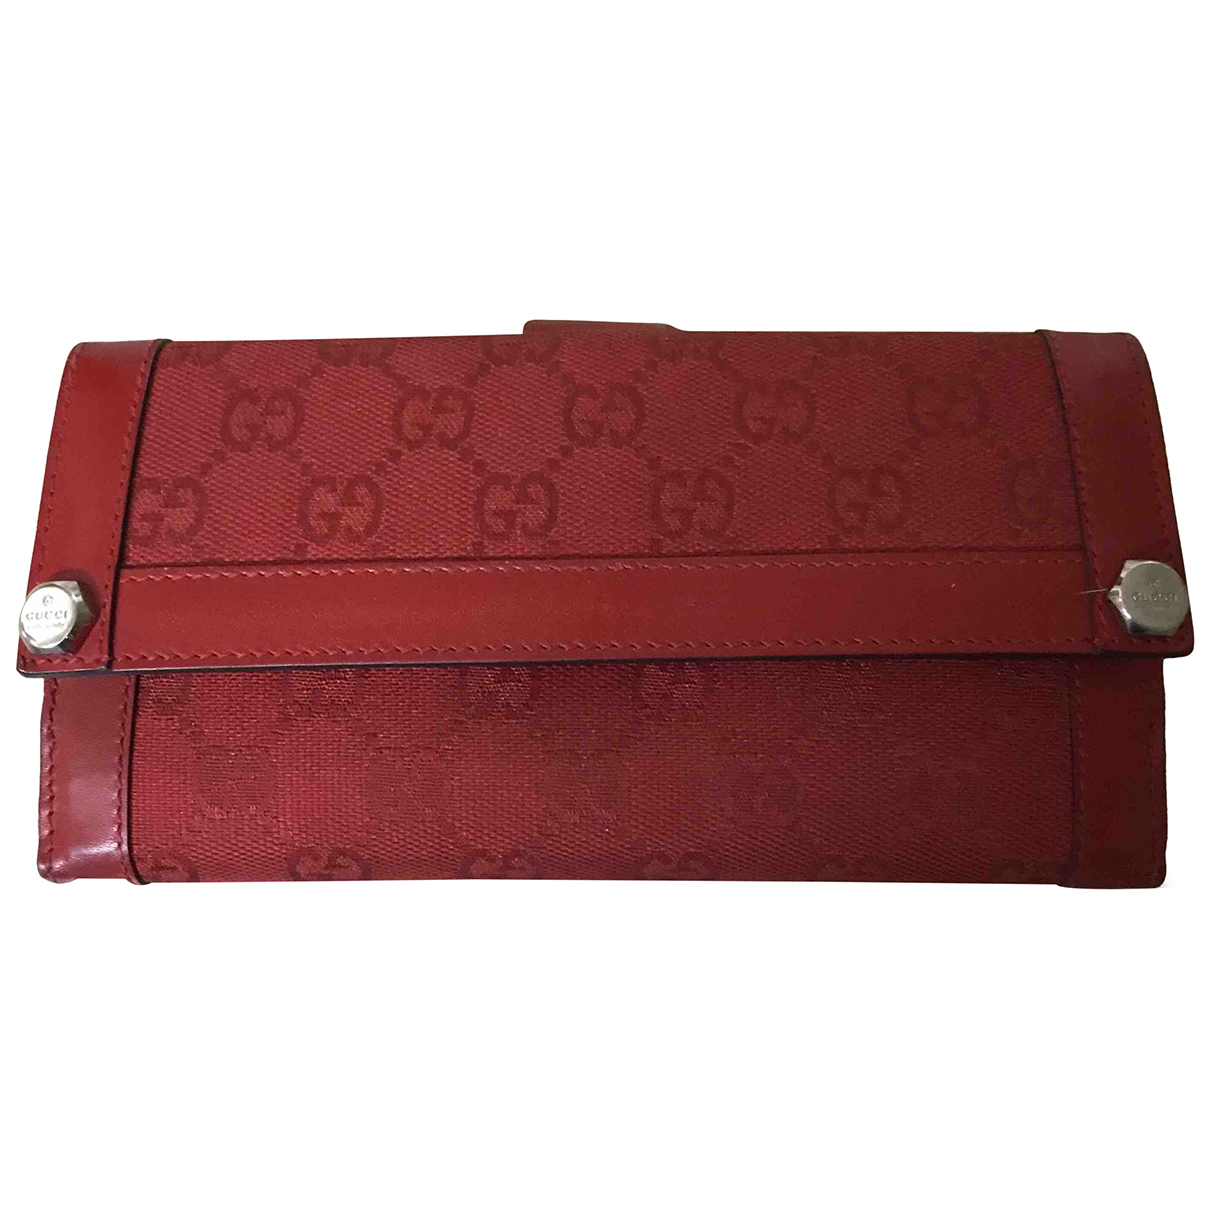 Gucci N Cloth Purses, wallet & cases for Women N